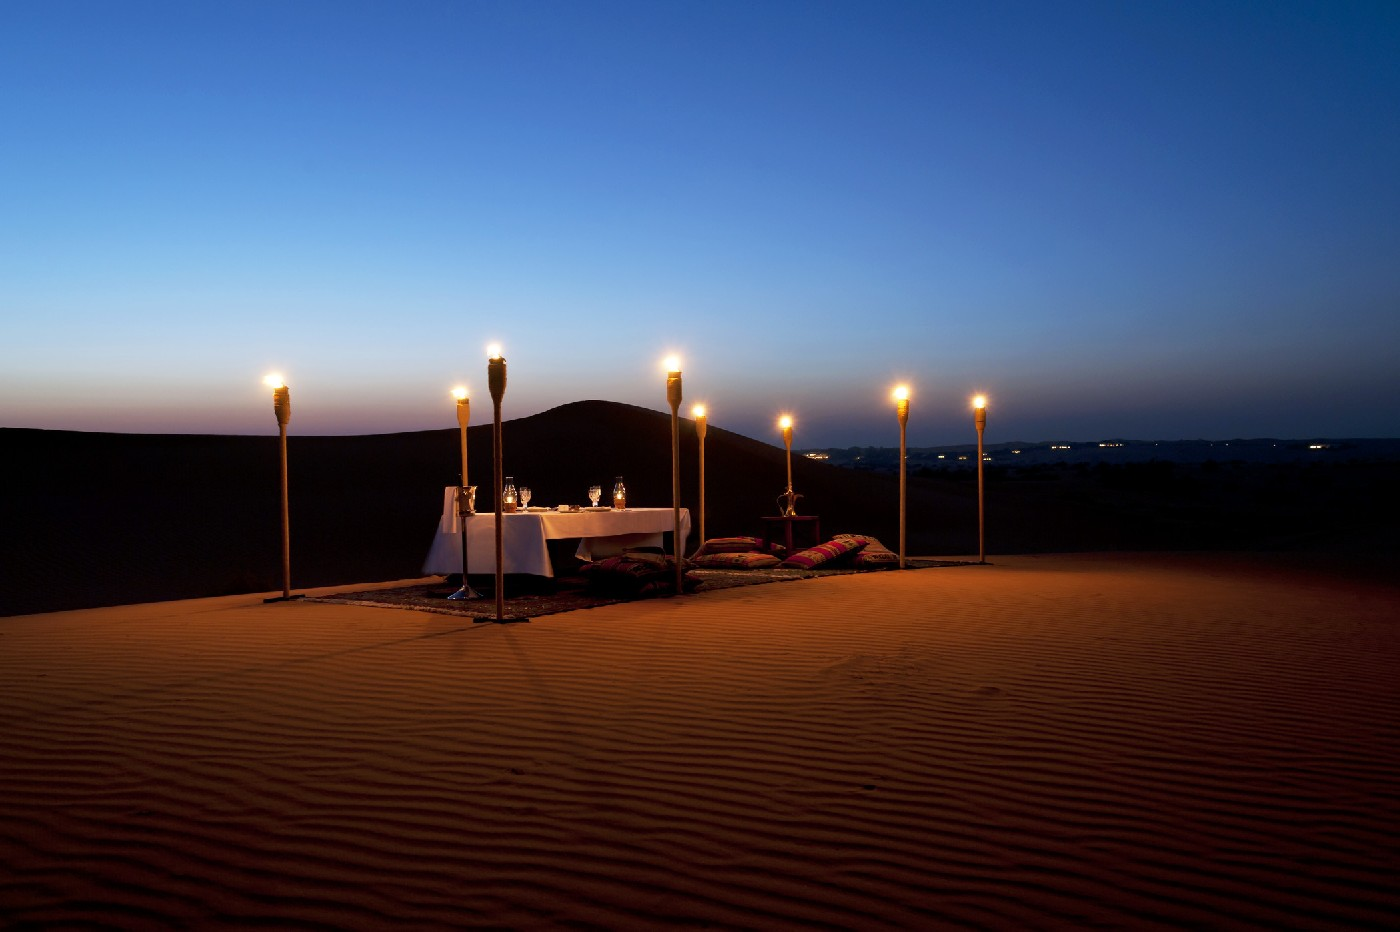 MERZOUGA LUXURY DESERT CAMPS & DESERT CAMPS FROM MARRAKECH